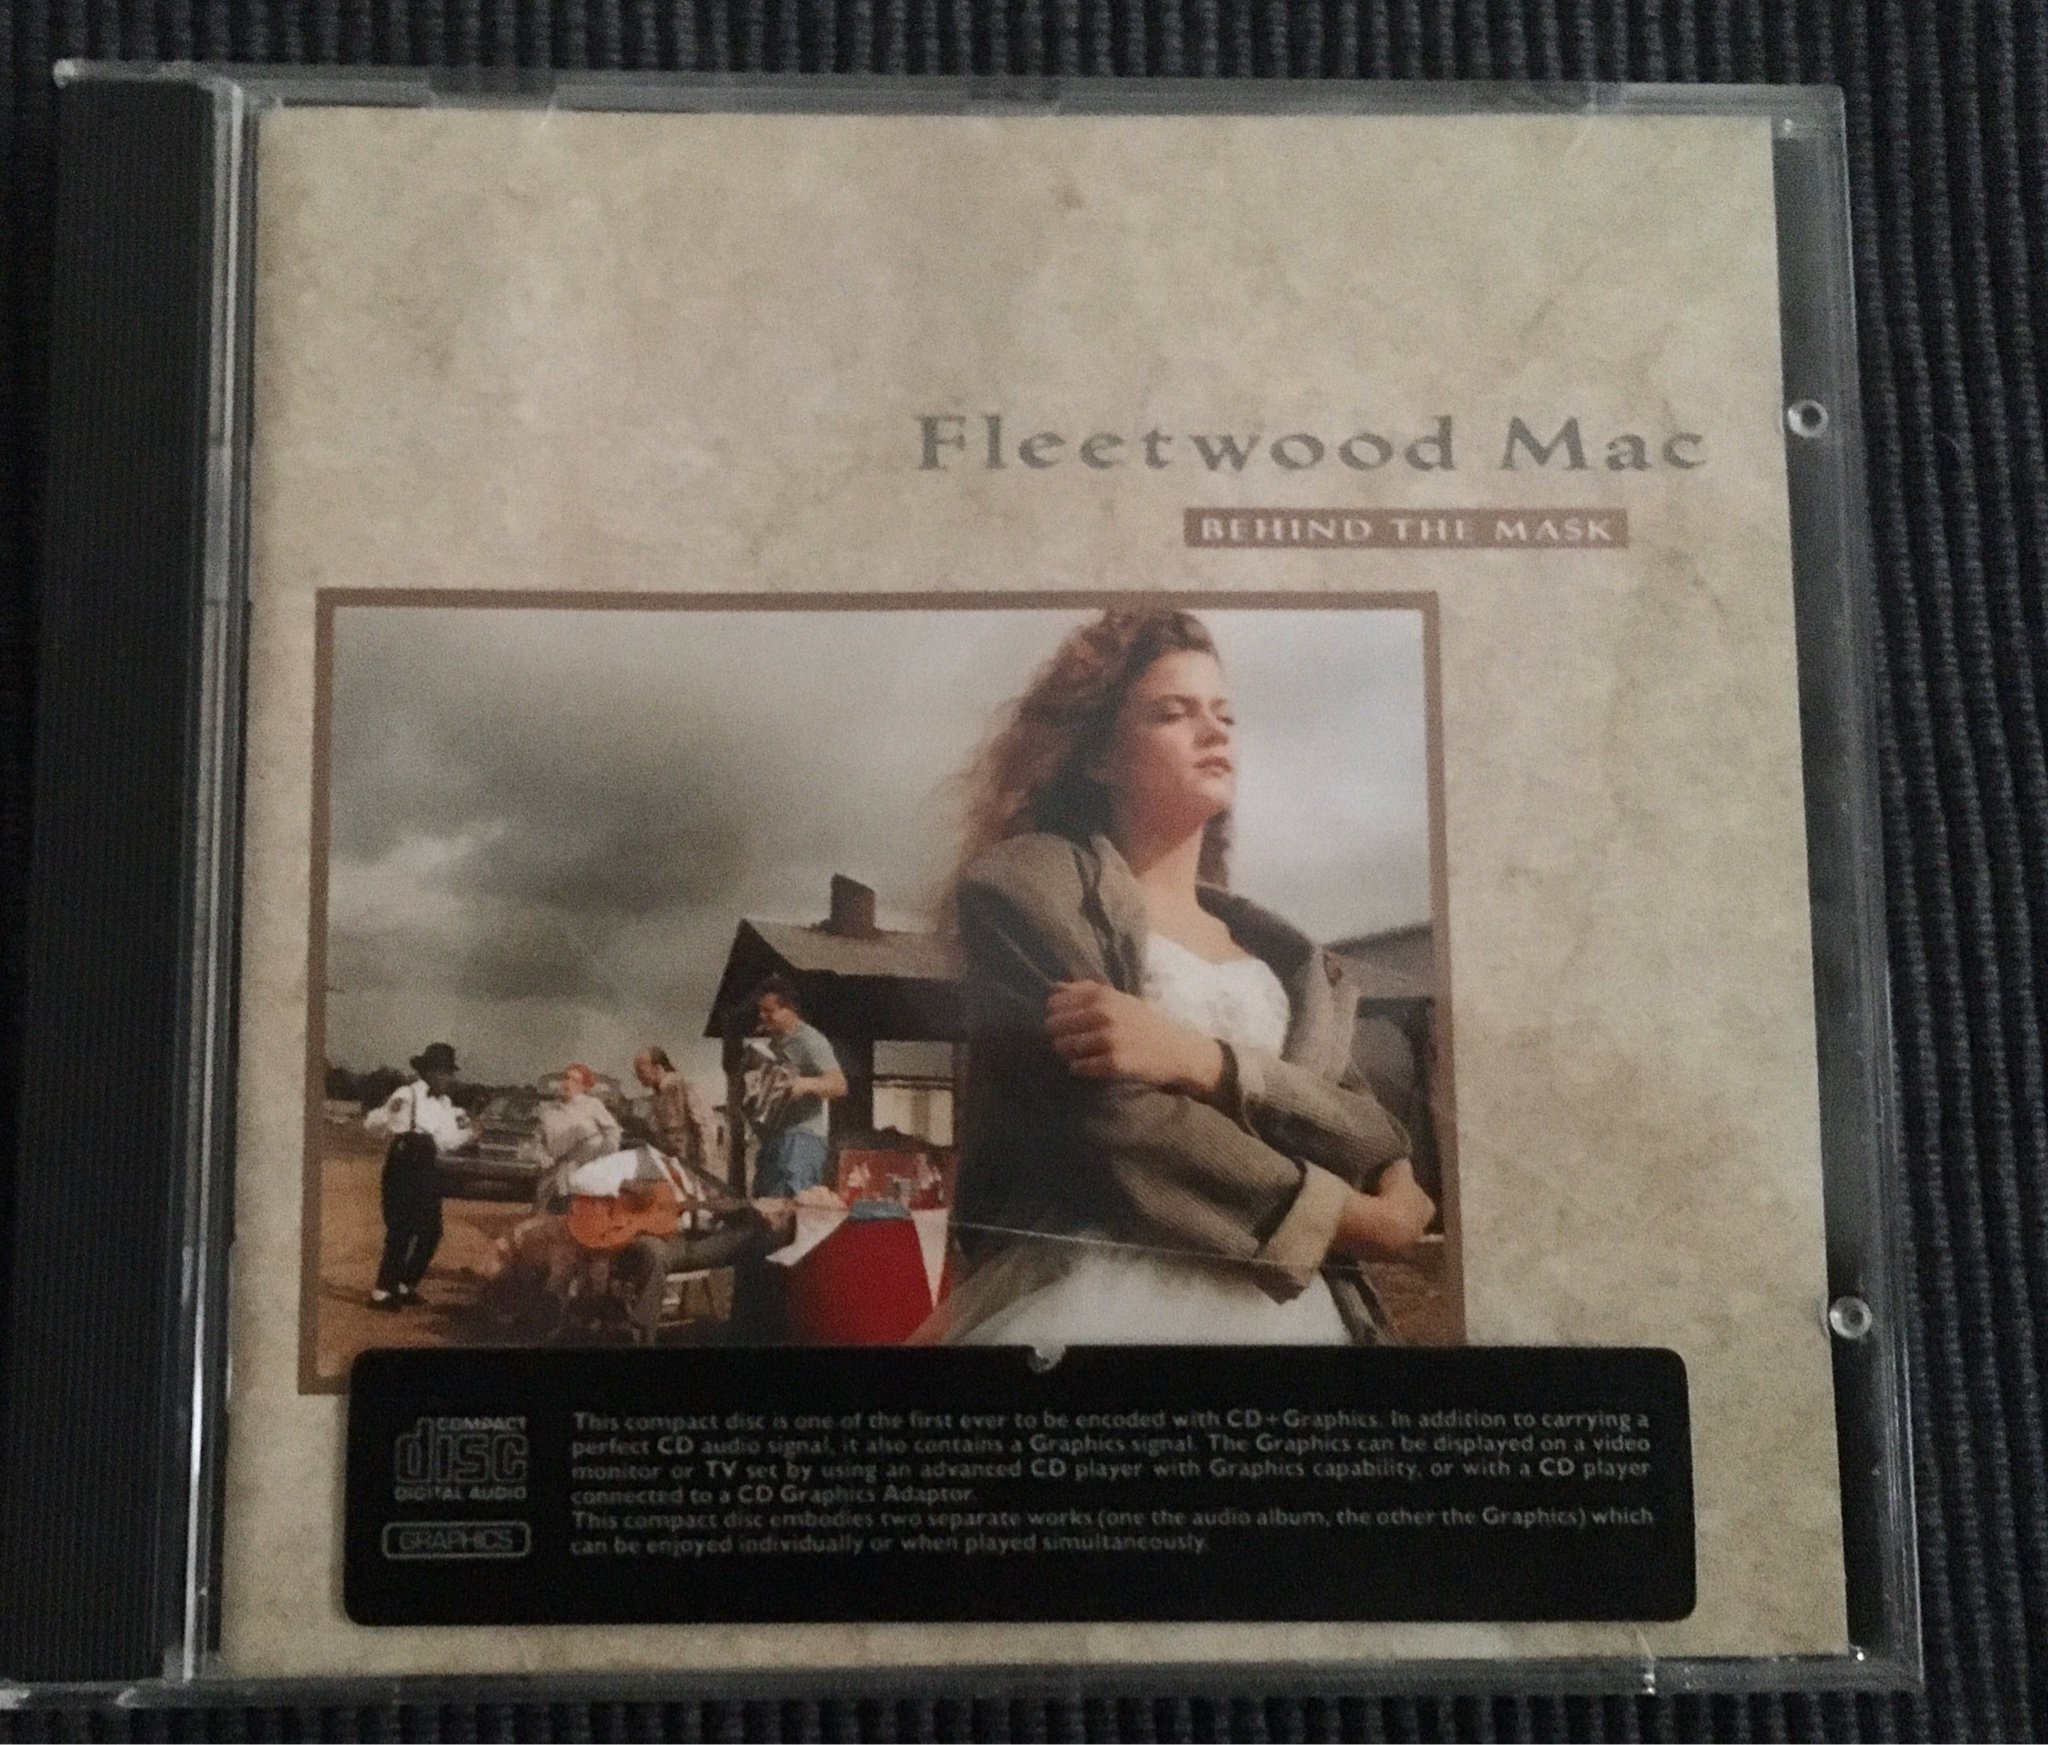 CD FLEETWOOD MAC - BEHIND THE MASK